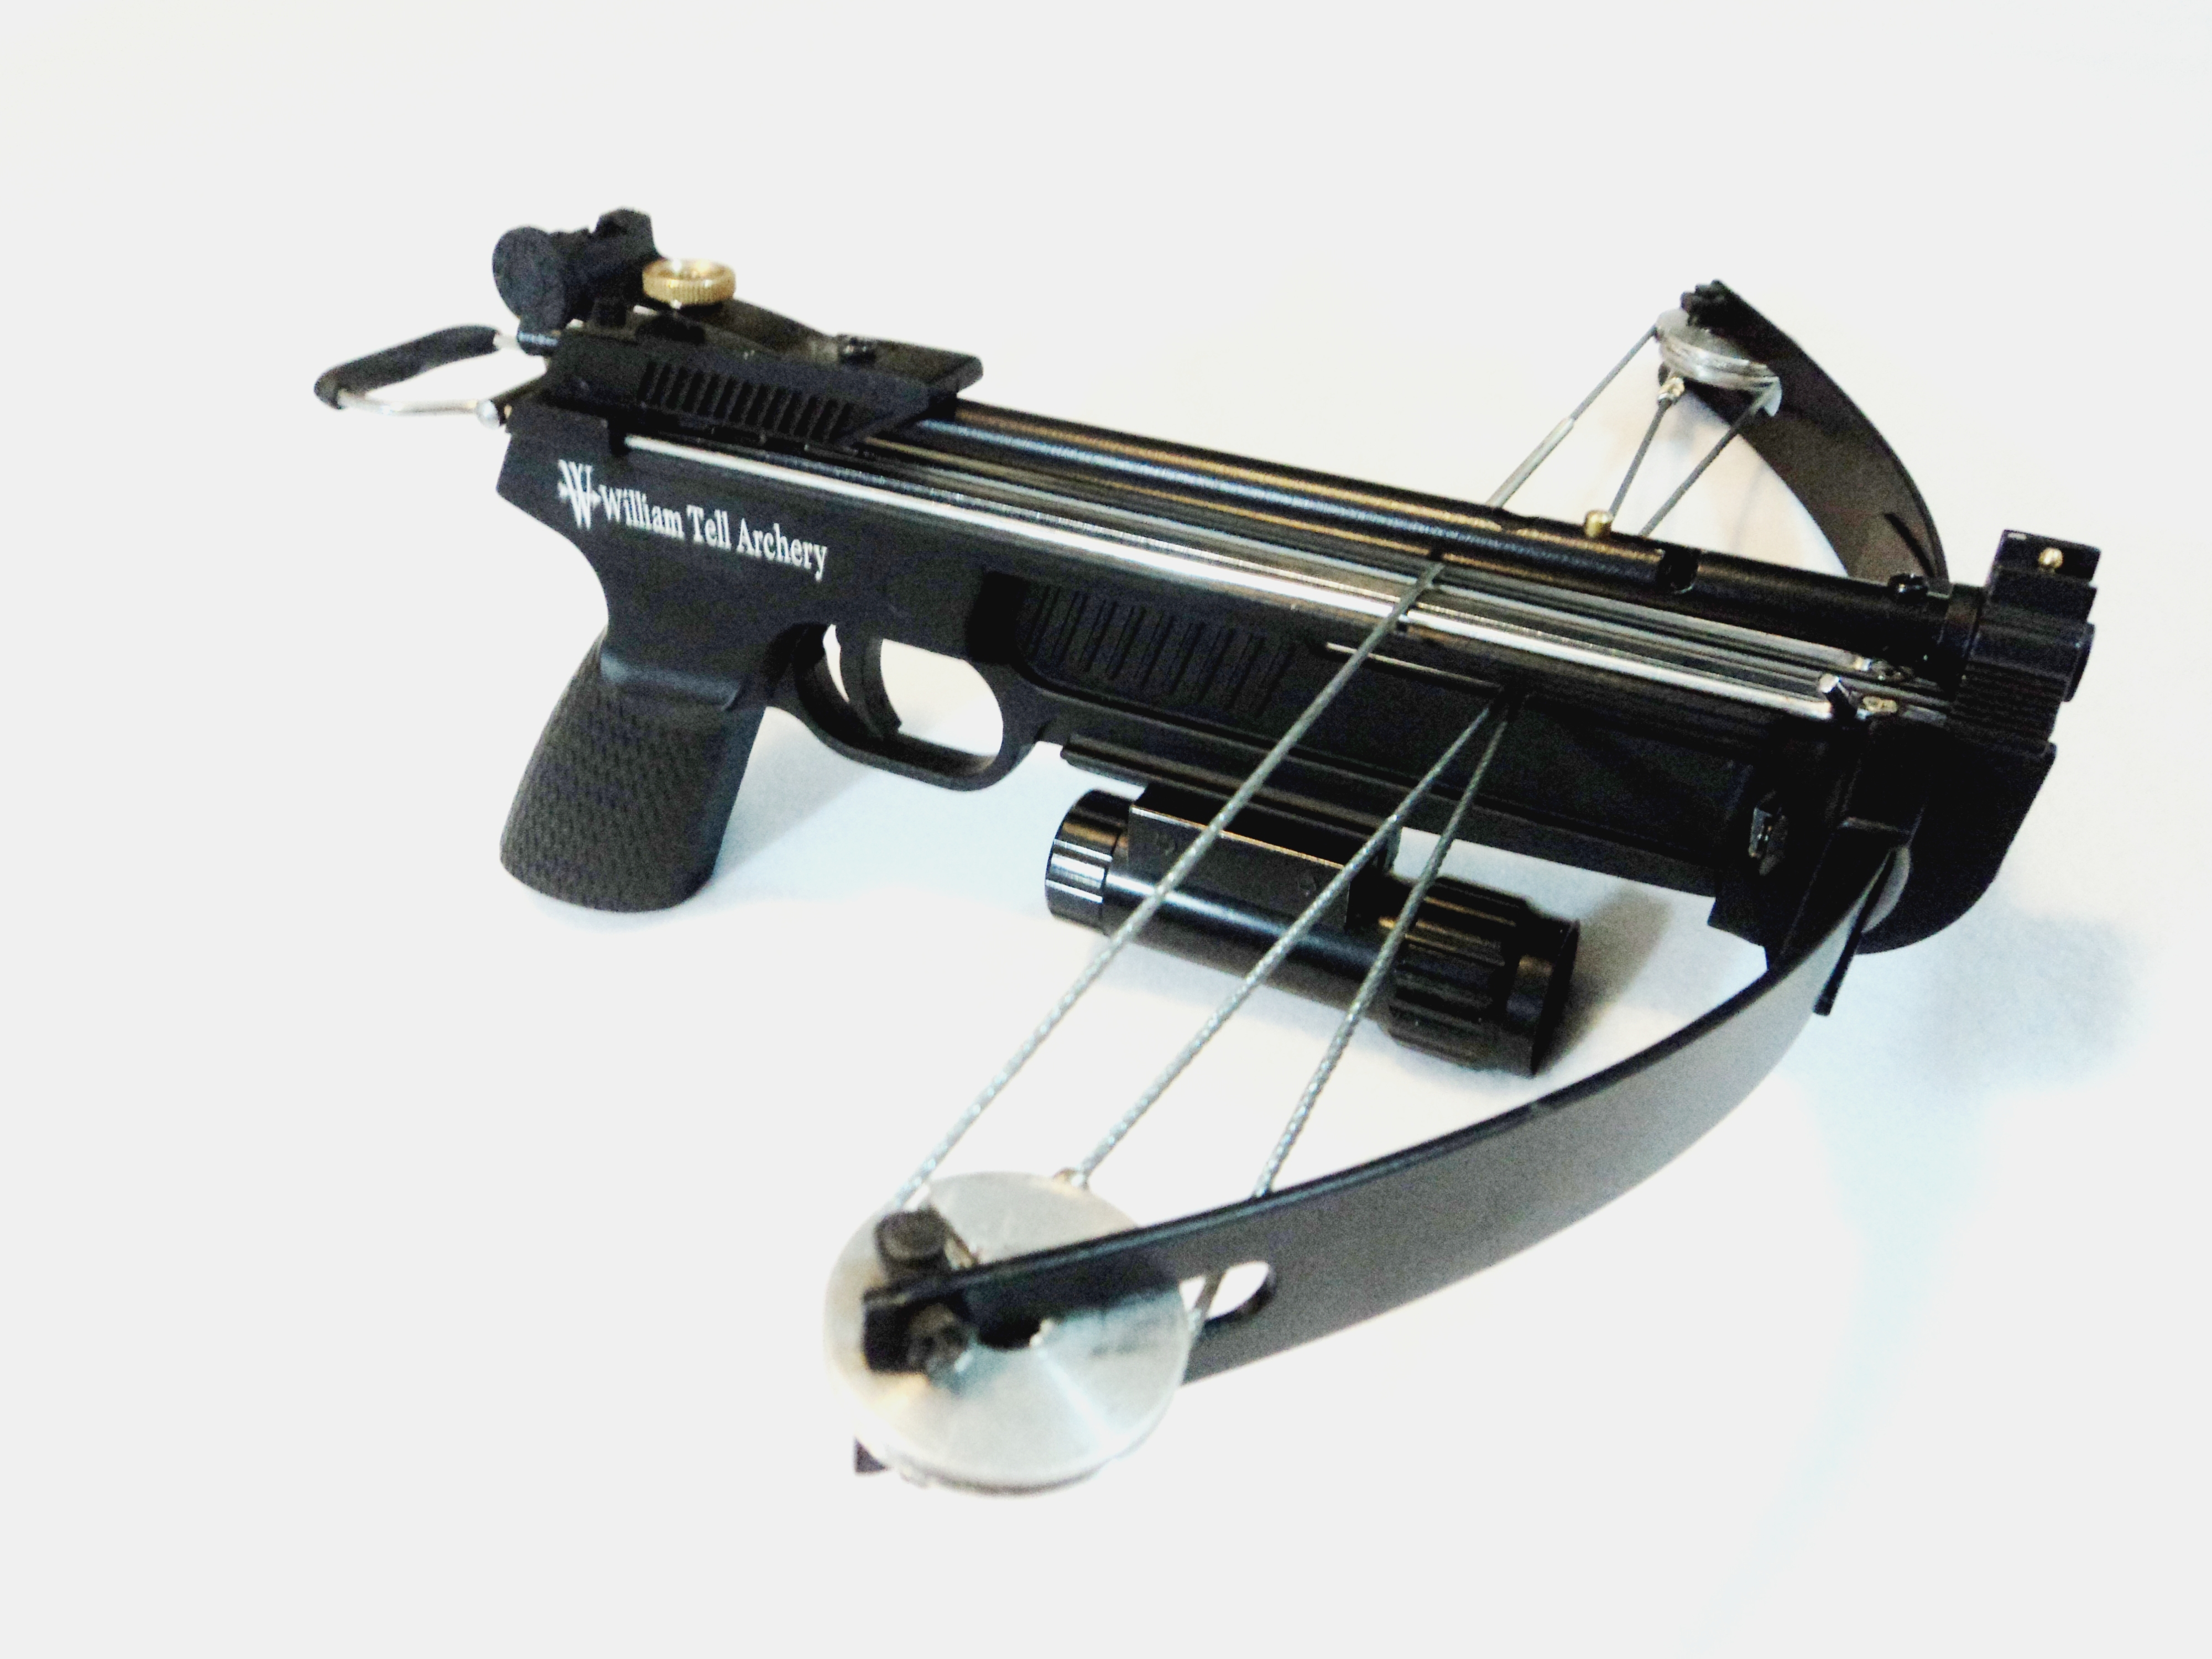 William tell archery supplies wt mantis ii dual cannon for Mini crossbow fishing